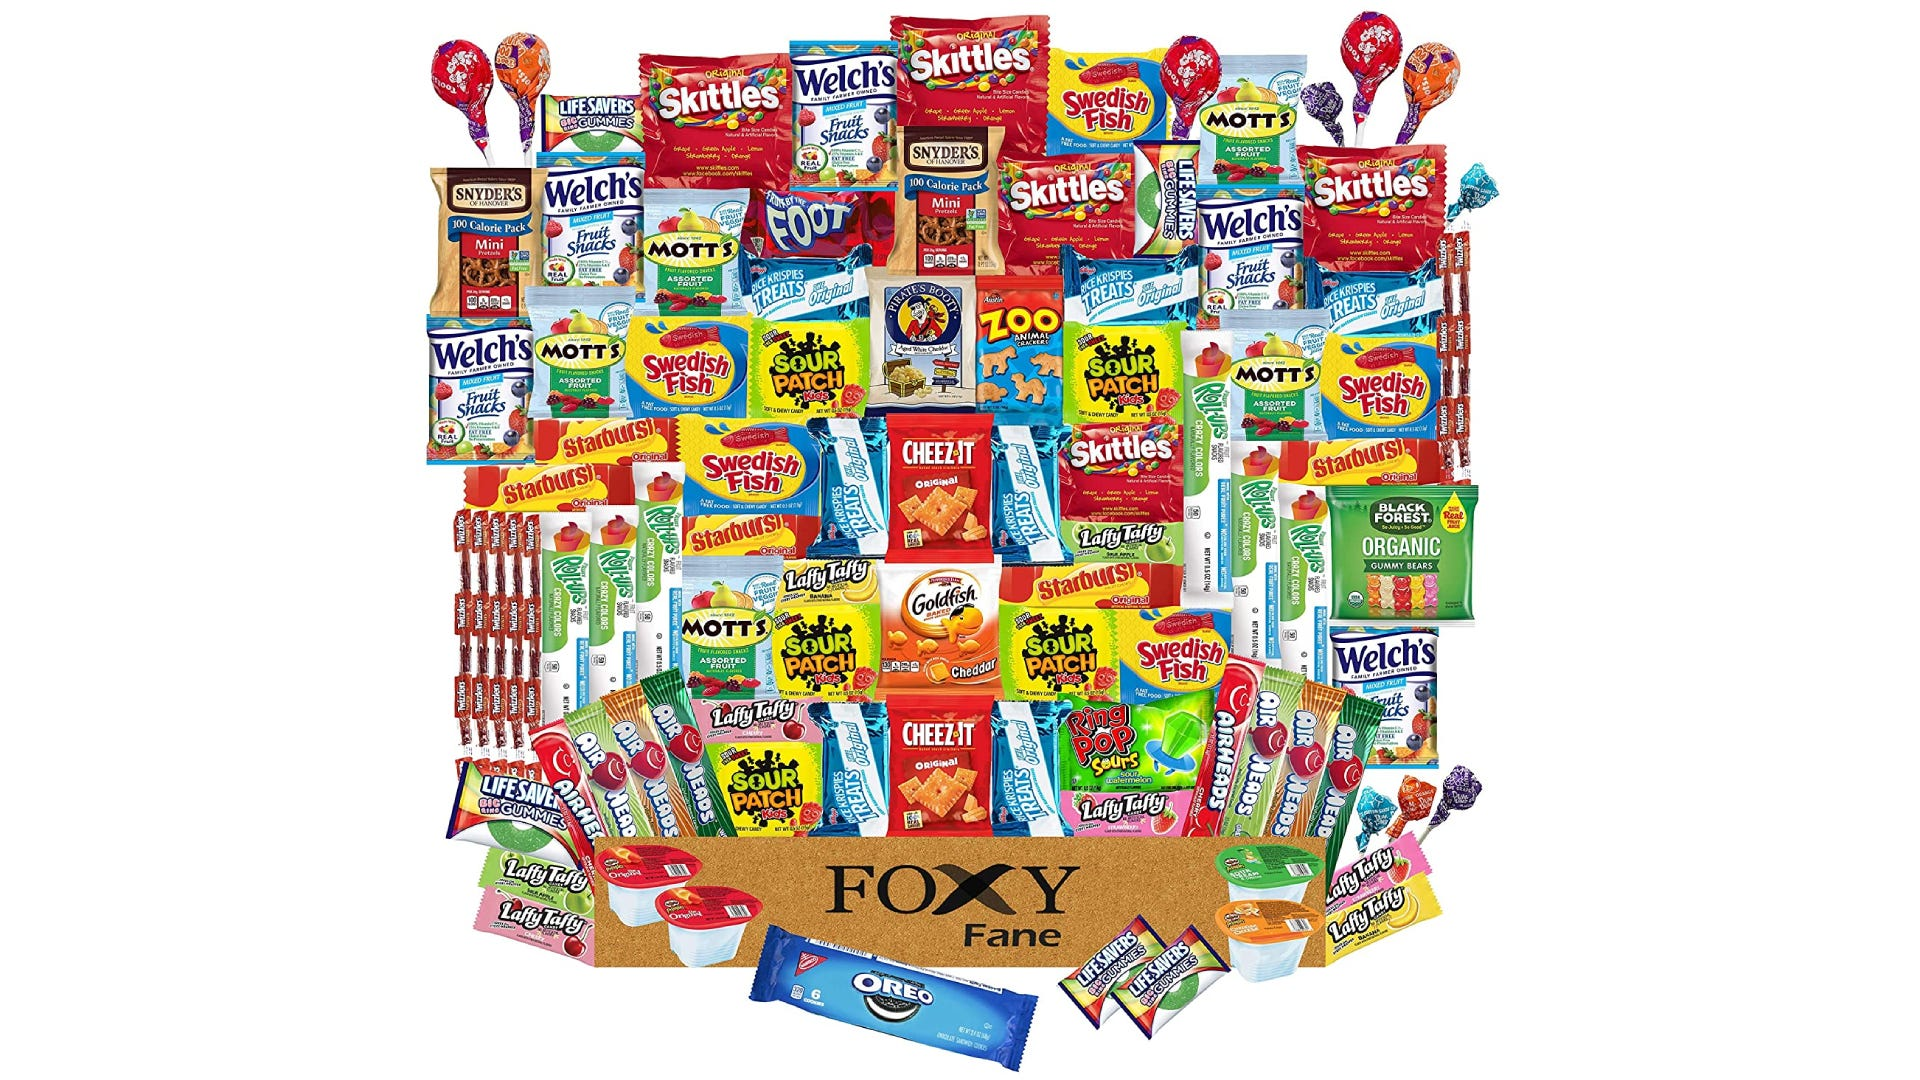 One hundred different candies and salty snacks are laid out above their packaging.